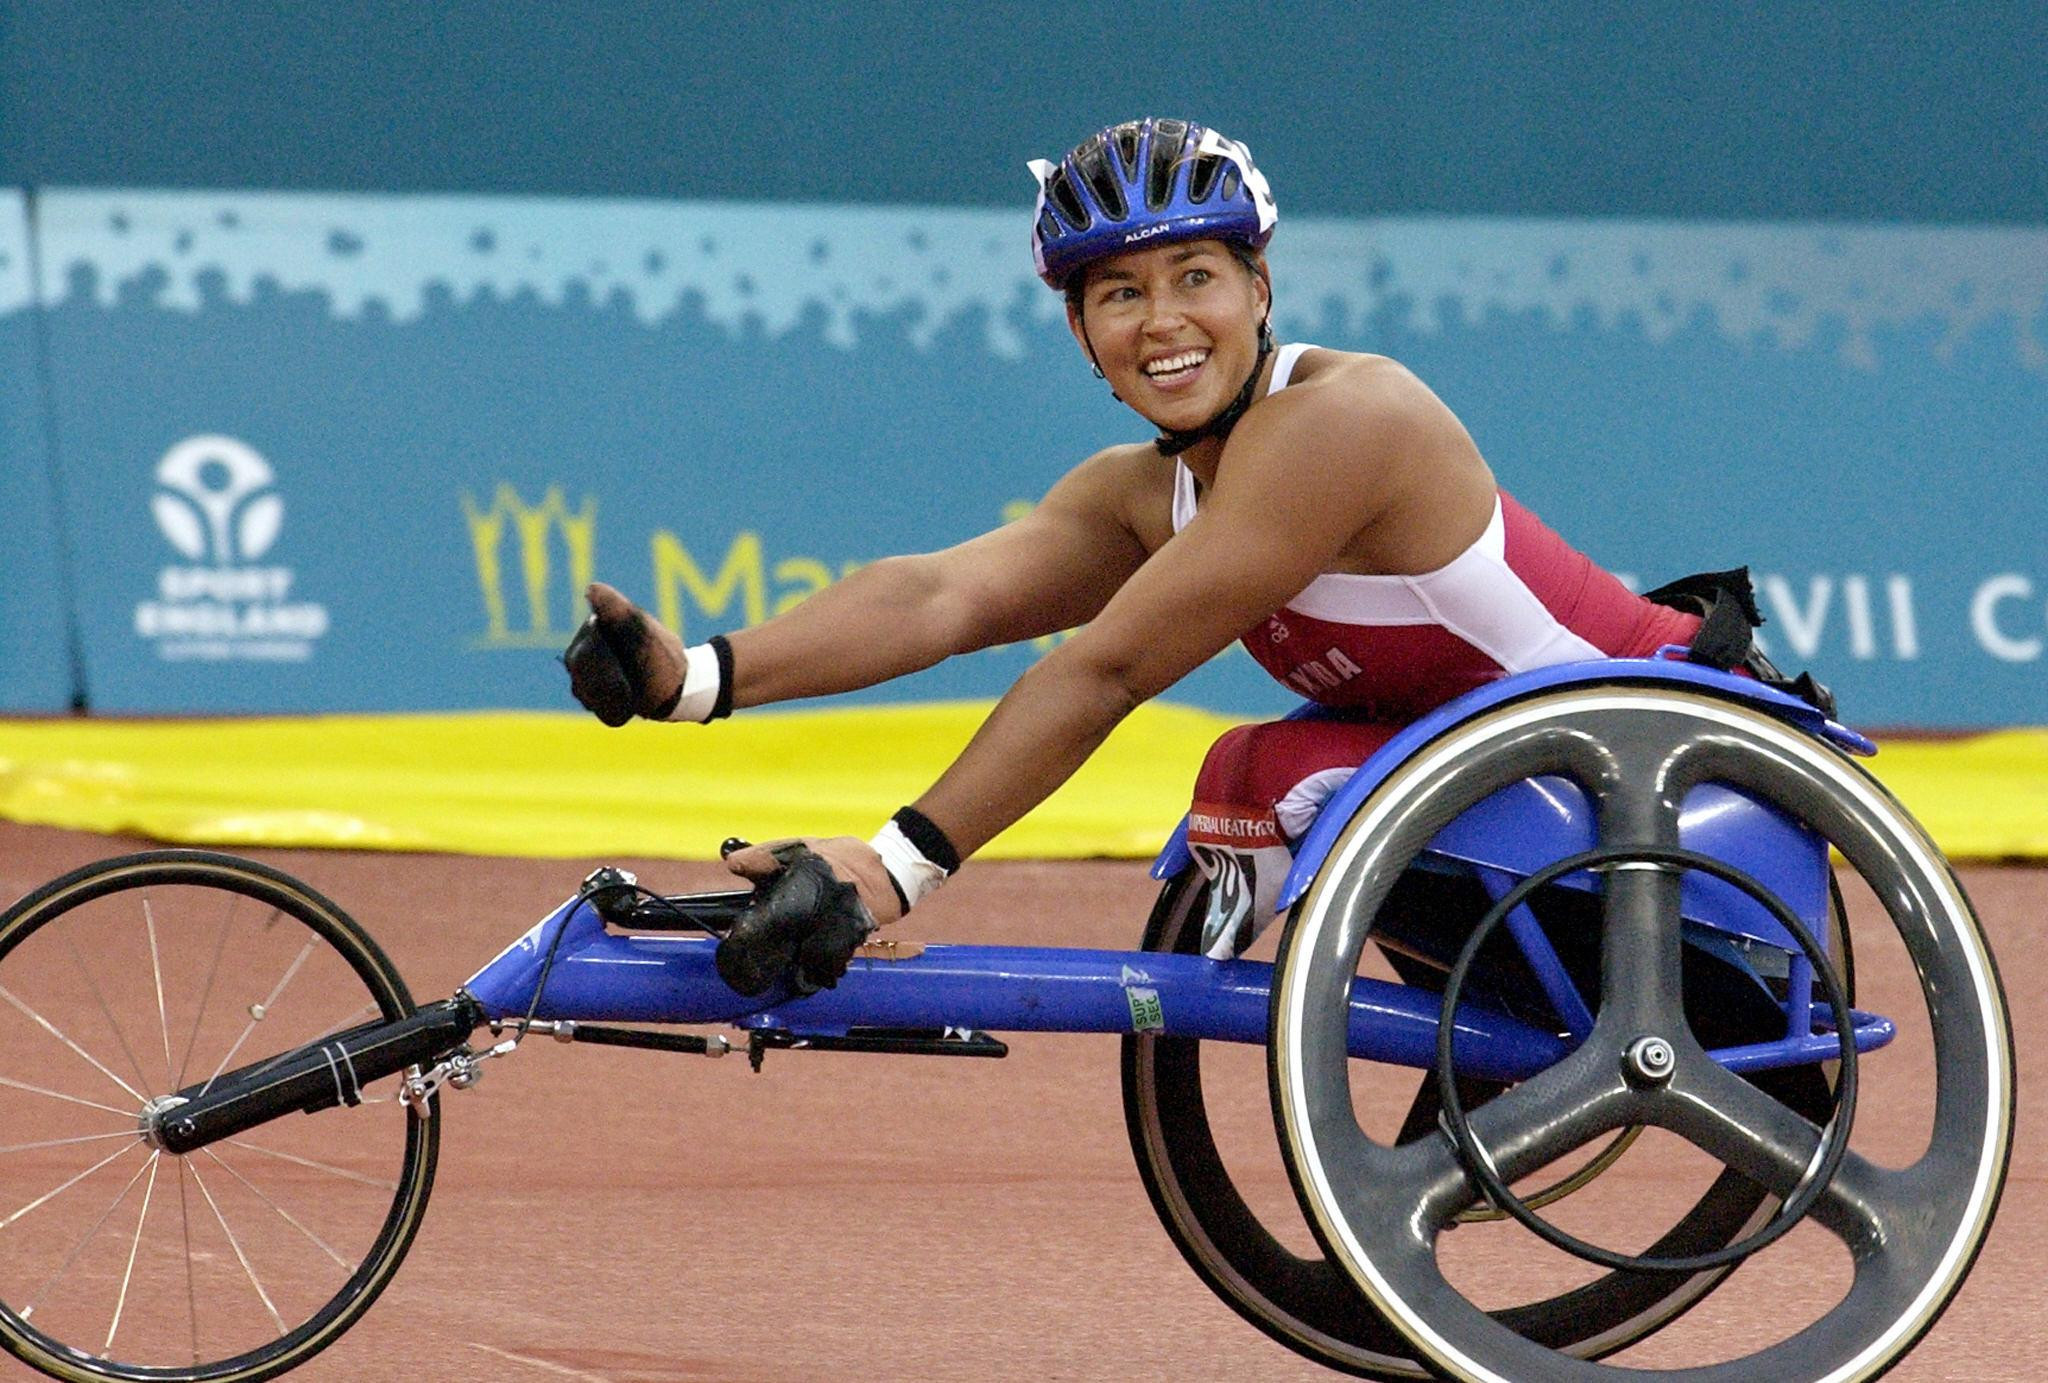 Chantal Petitclerc celebrates after making history by becoming the first athlete to win a gold medal in a Para-sport event at Manchester 2002 ©Getty Images